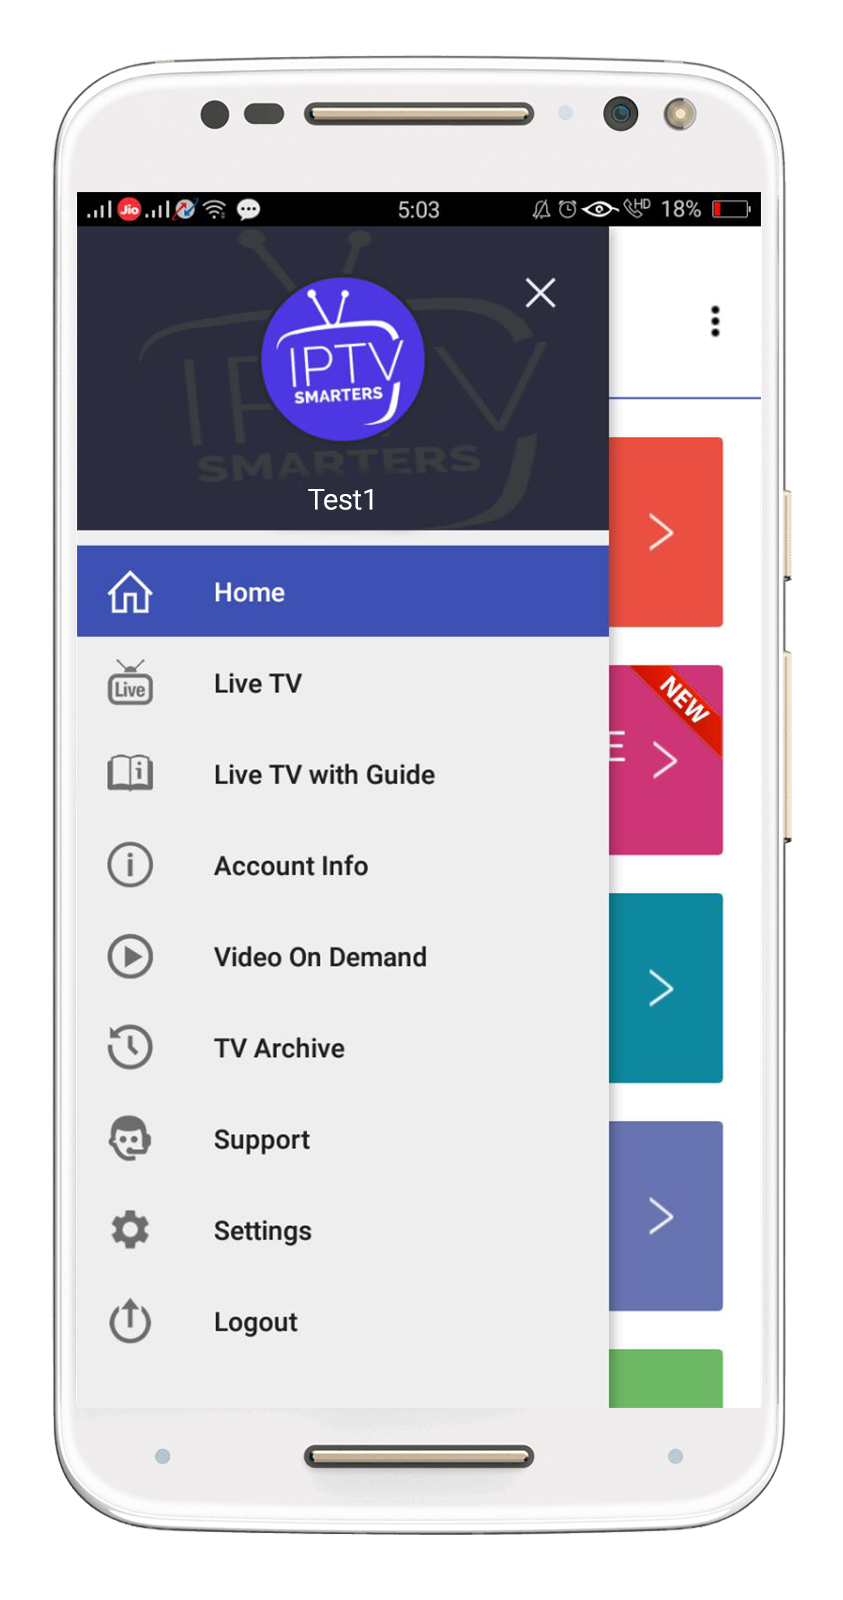 Pin by IPTV Smarters on IPTV Smarters - Apps For IPTV